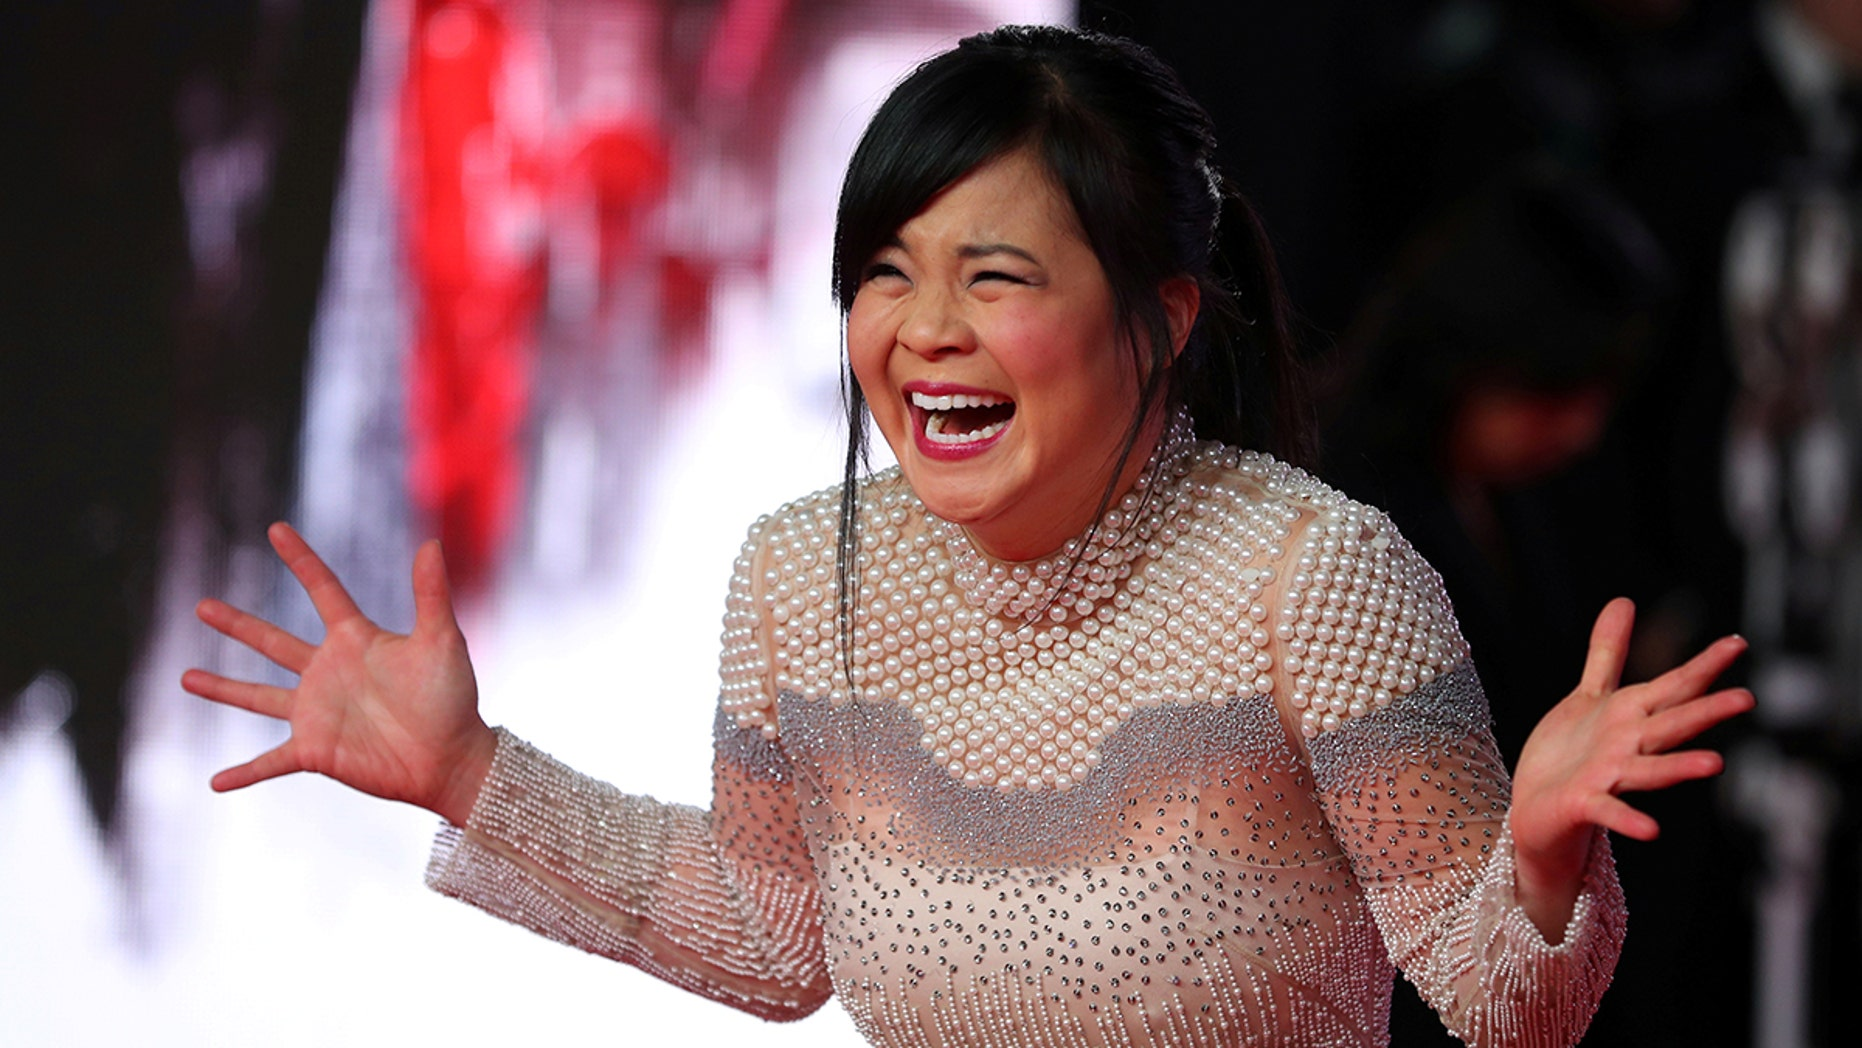 REFILE - CORRECTING SURNAME OF ACTOR Actor Kelly Marie Tran poses for photographers as she arrives for the European Premiere of 'Star Wars: The Last Jedi', at the Royal Albert Hall in central London, Britain December 12, 2017. REUTERS/Hannah McKay - RC1FA85A84D0